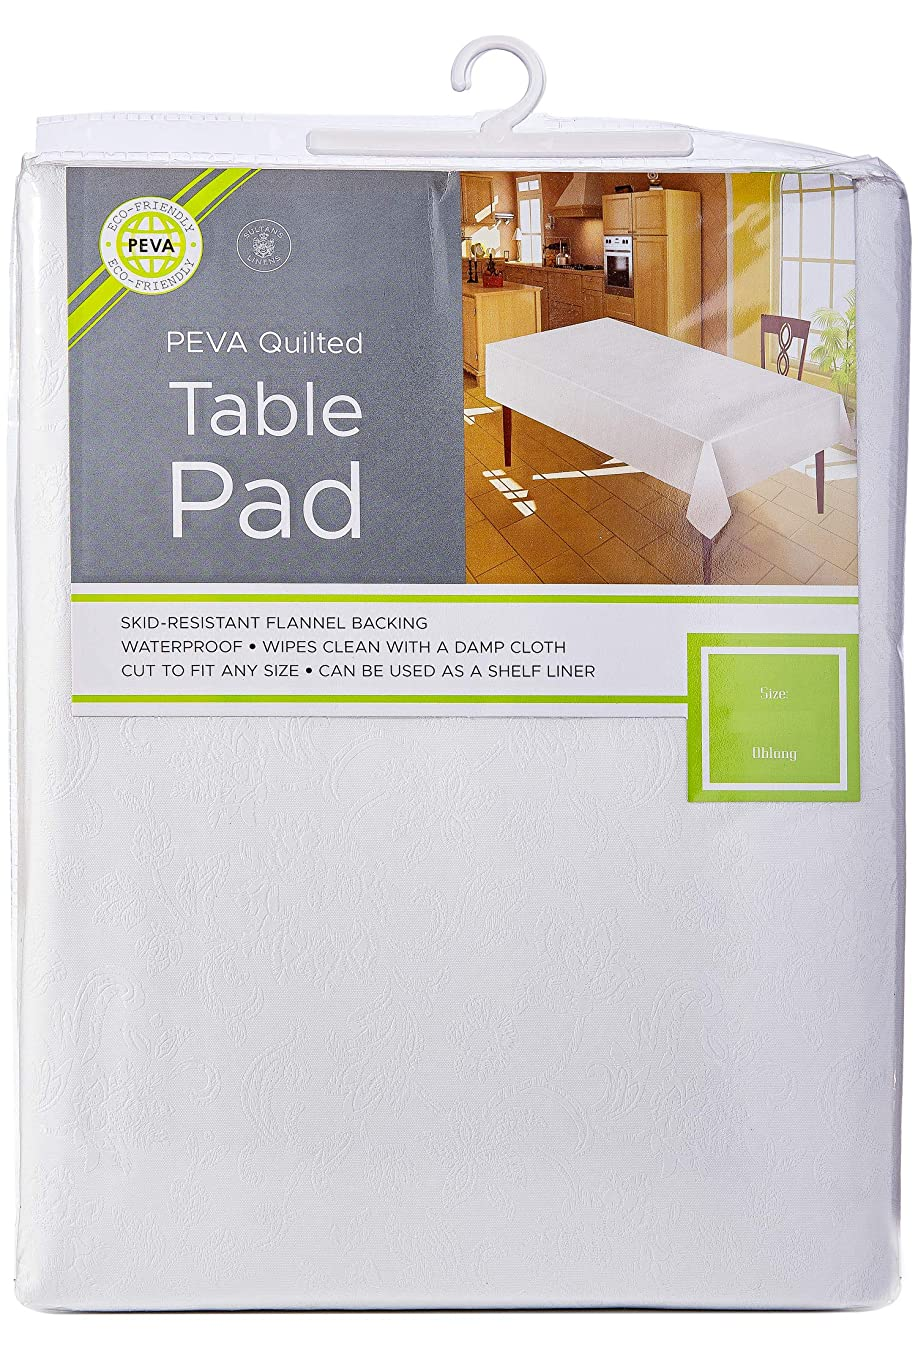 Sultan's Linens Eco-Friendly Peva Table Pad Waterproof Surface with Flannel Backing Floral (120-inch)